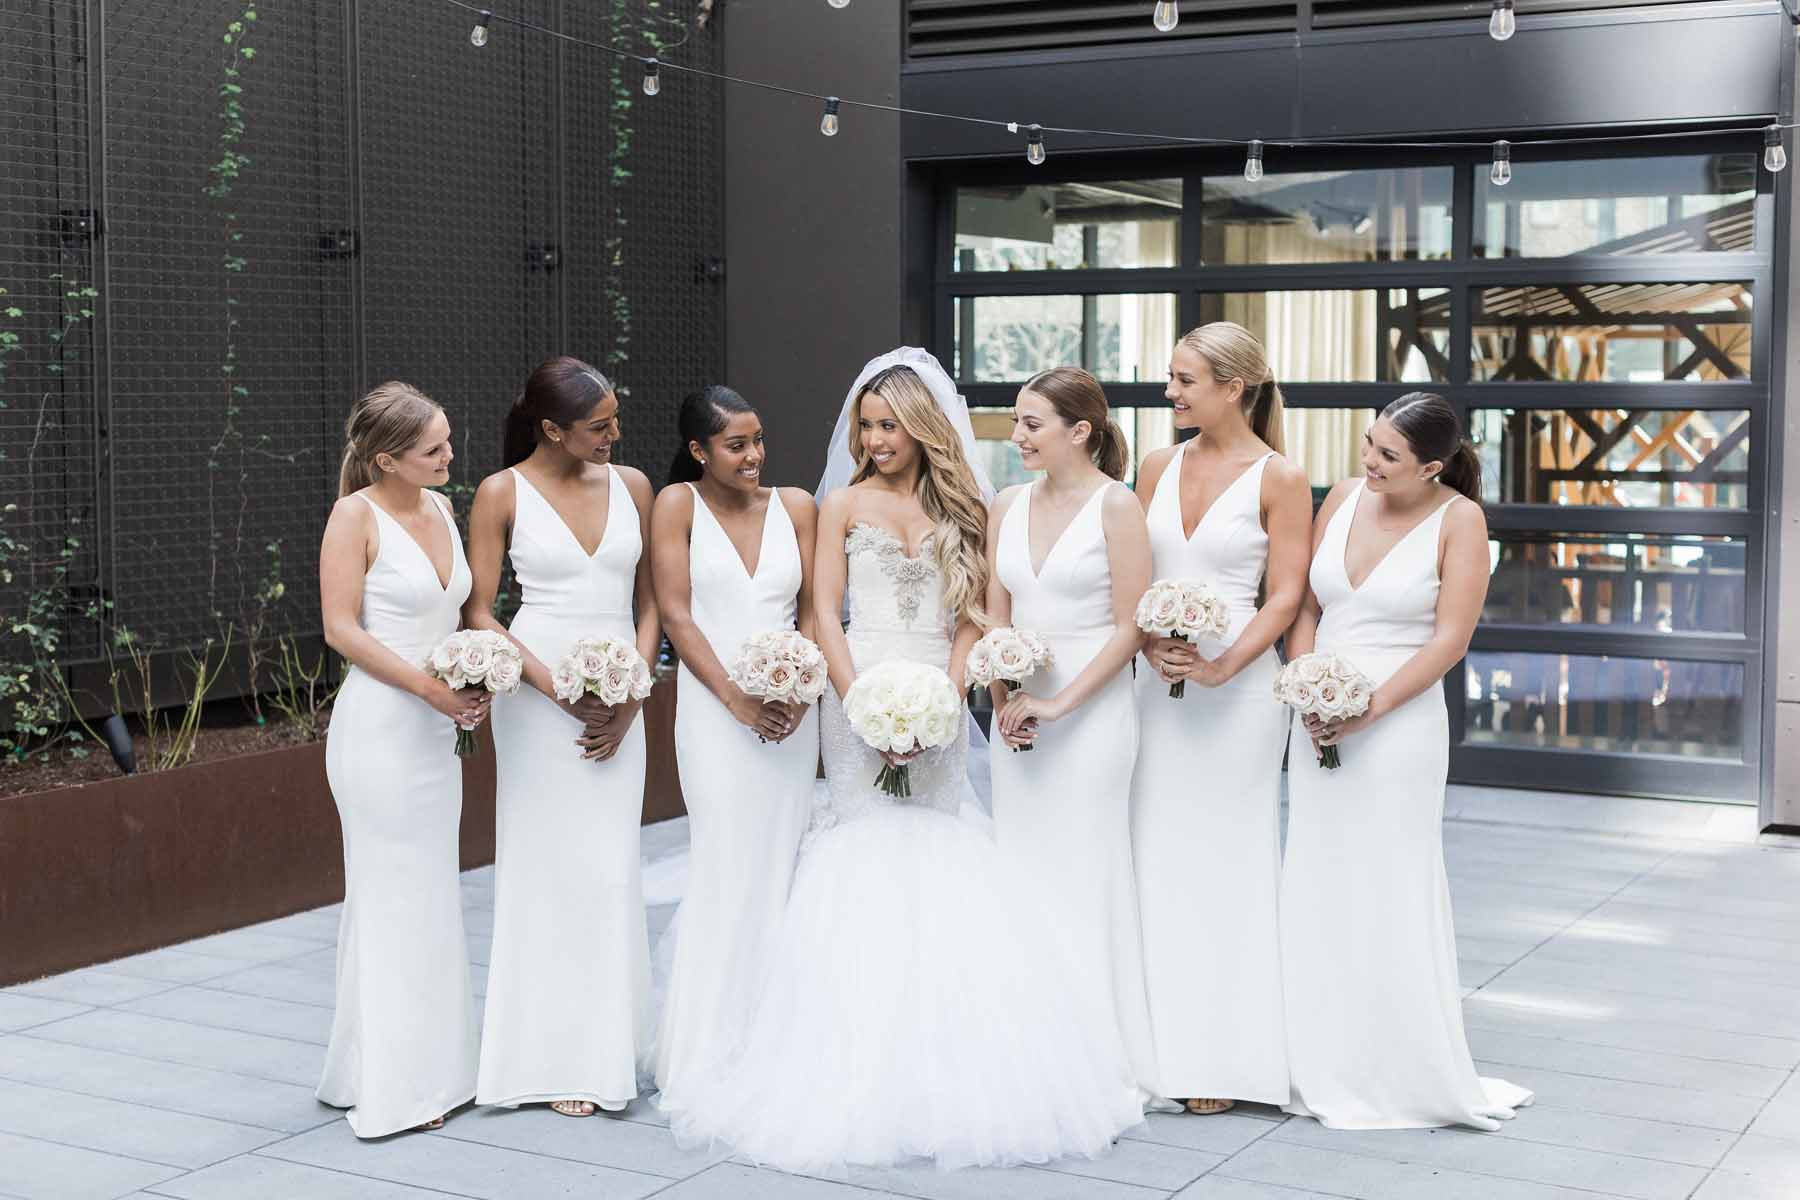 A bridal party in all white dresses